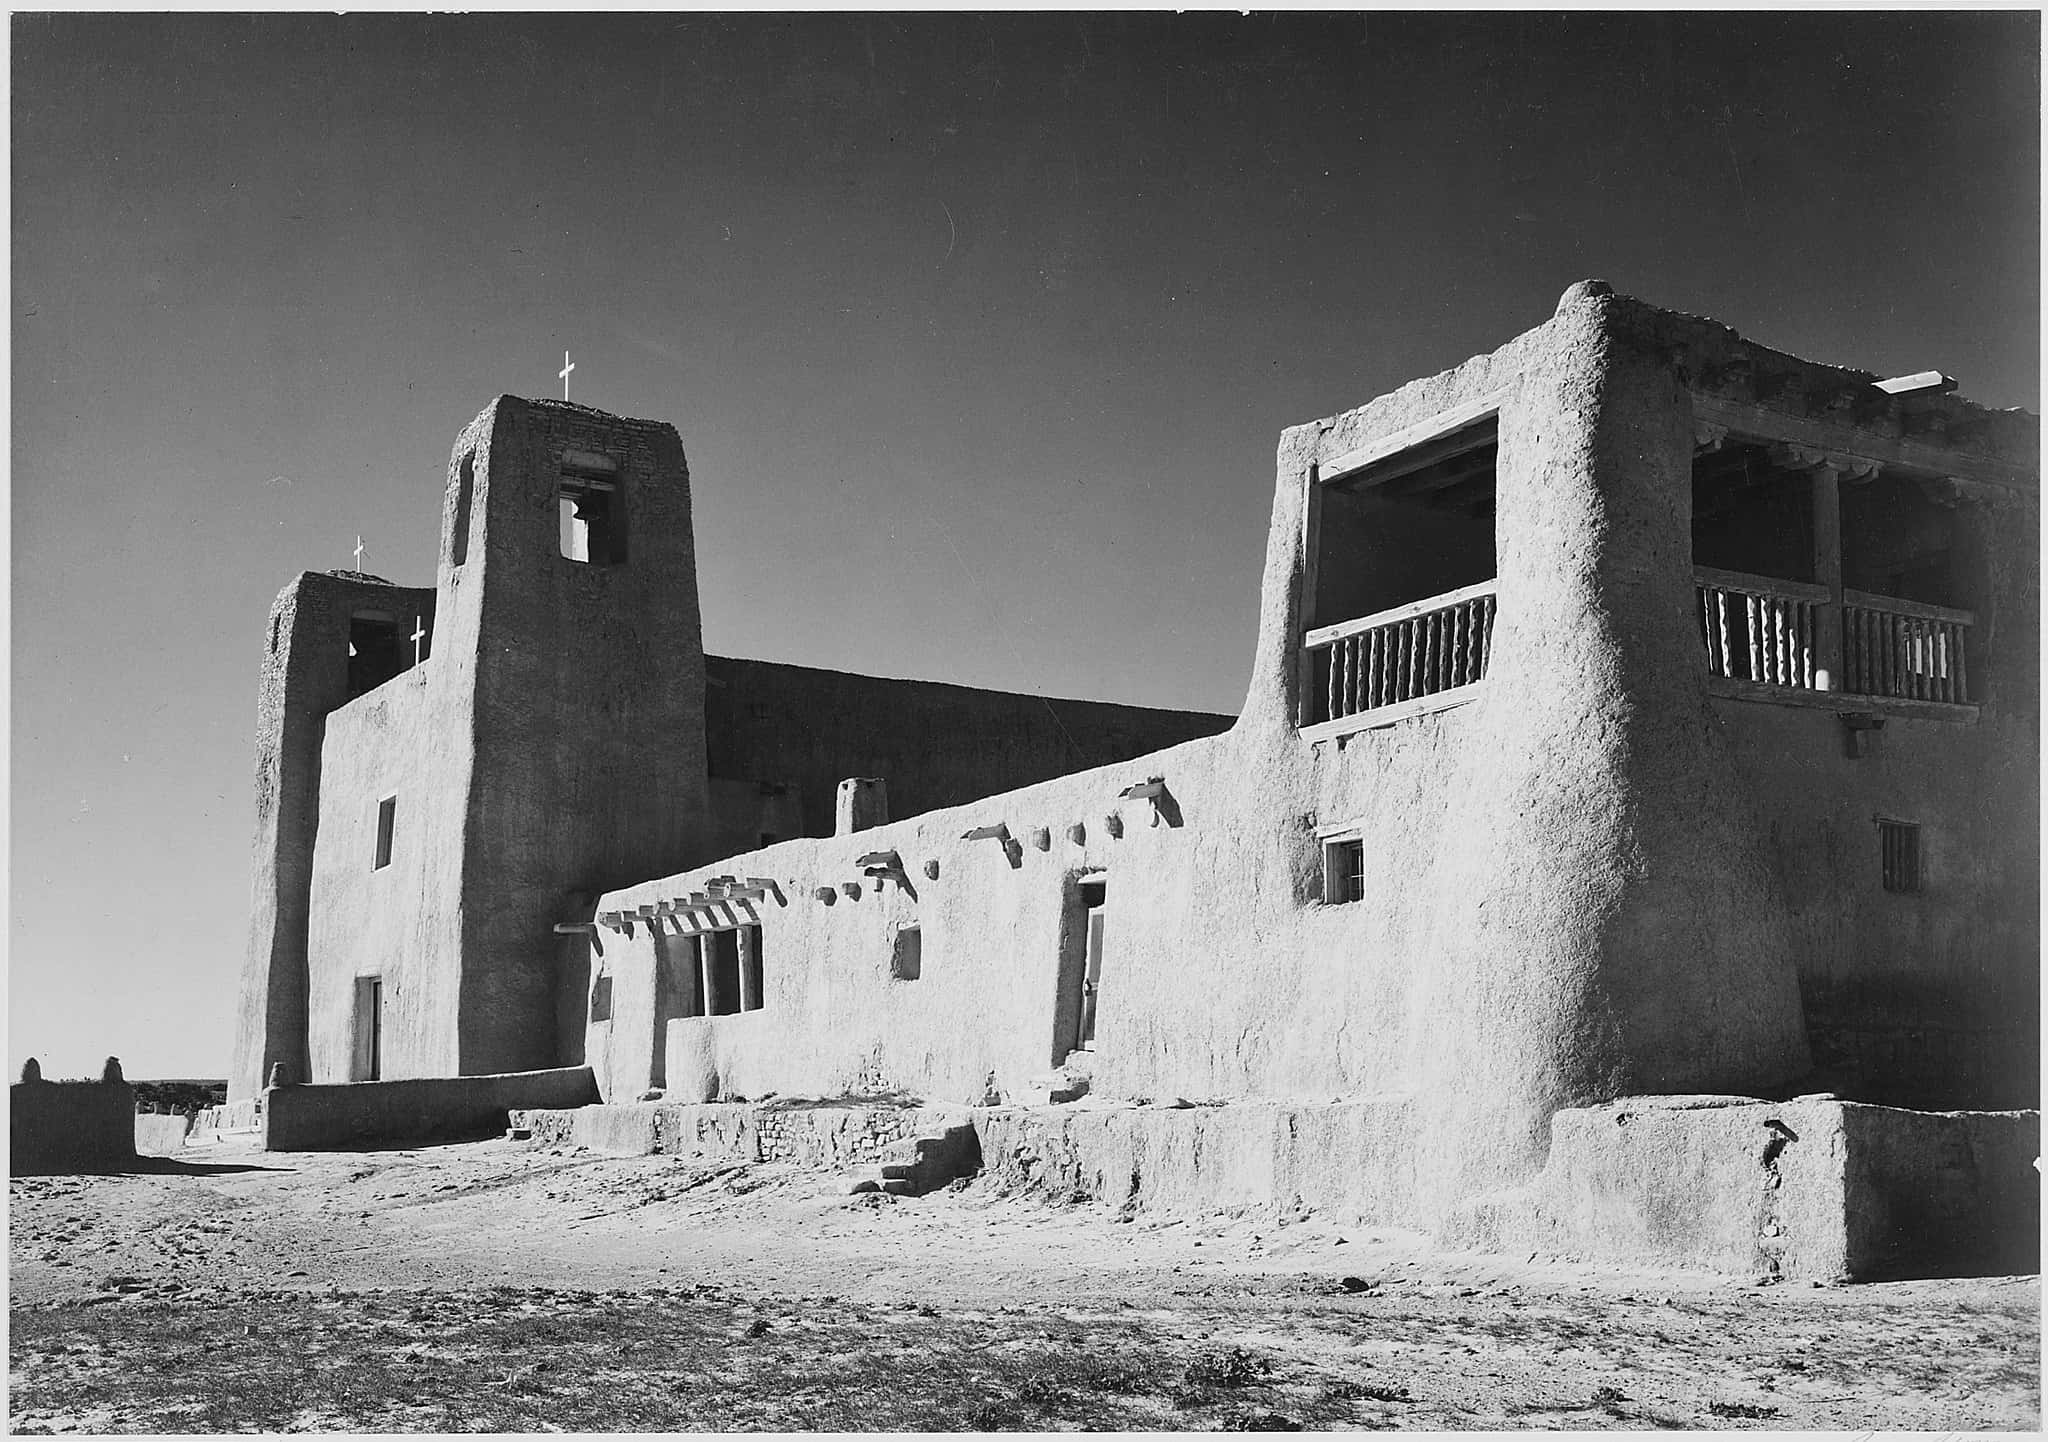 Ansel Adams National Archives 79 AA A03 min image